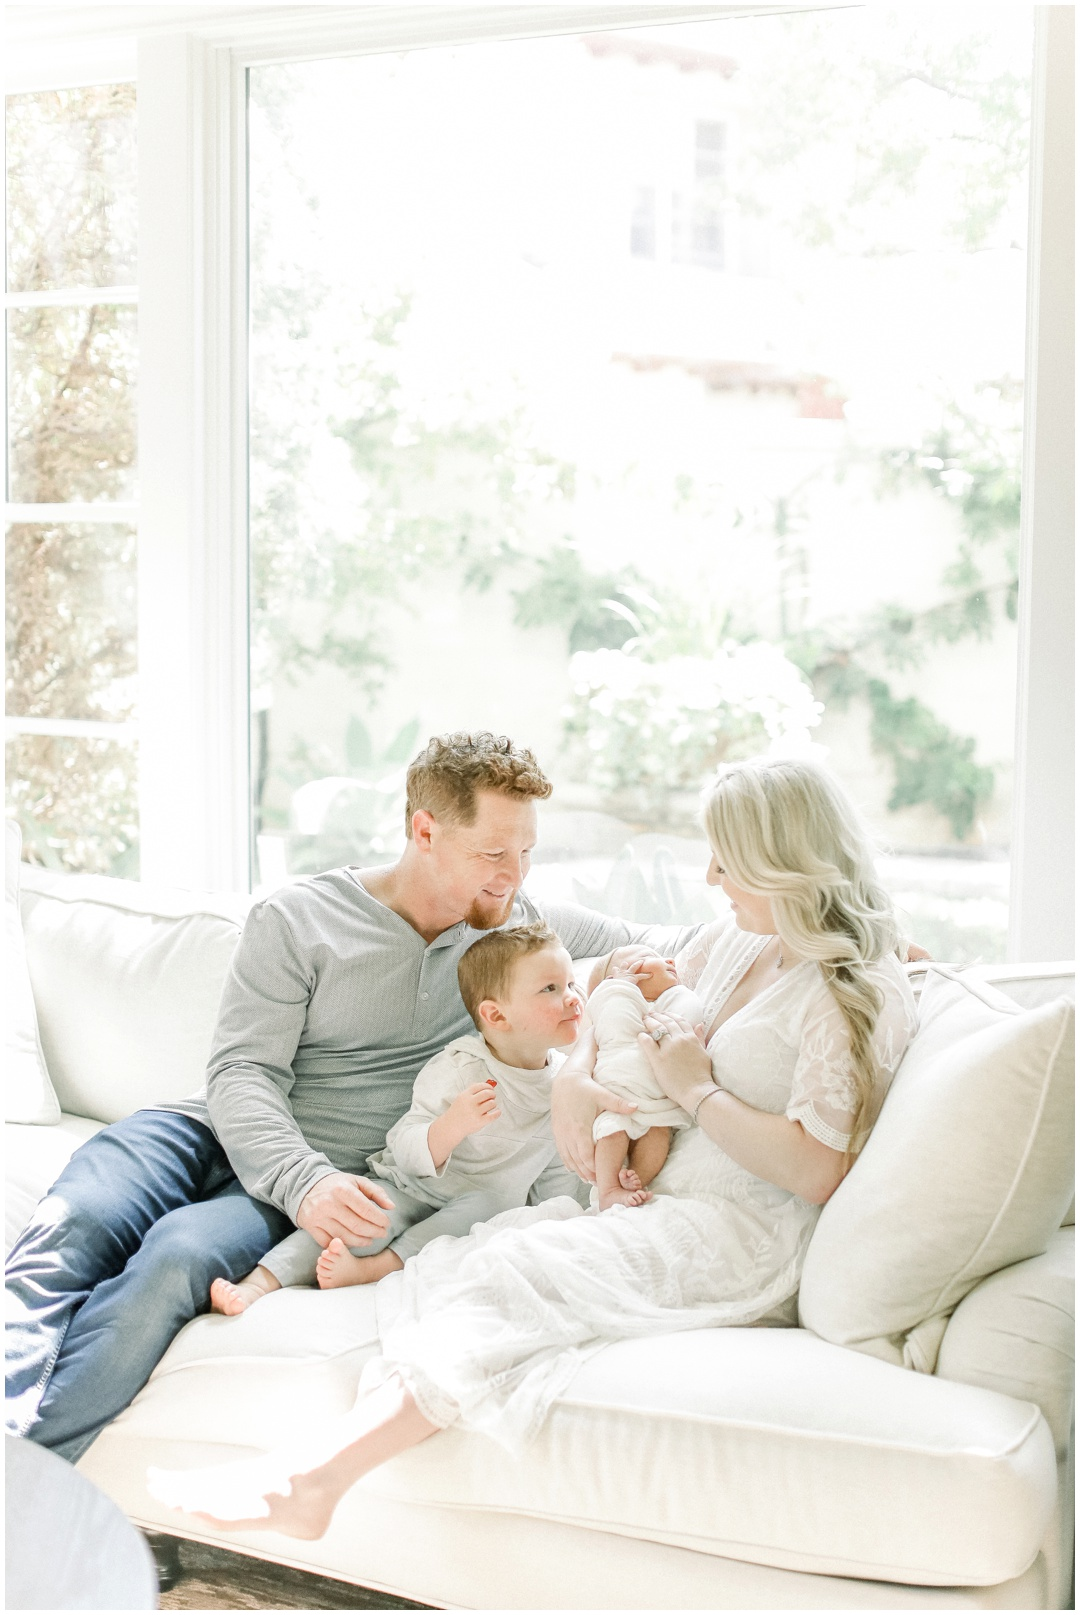 Newport_Beach_Newborn_Light_Airy_Natural_Photographer_Newport_Beach_Photographer_Orange_County_Family_Photographer_Cori_Kleckner_Photography_Newport_Beach_Photographer_newborn_kole_calhoun56_kole_calhoun_Jennifer_Calhoun_Knox_Calhoun_3758.jpg